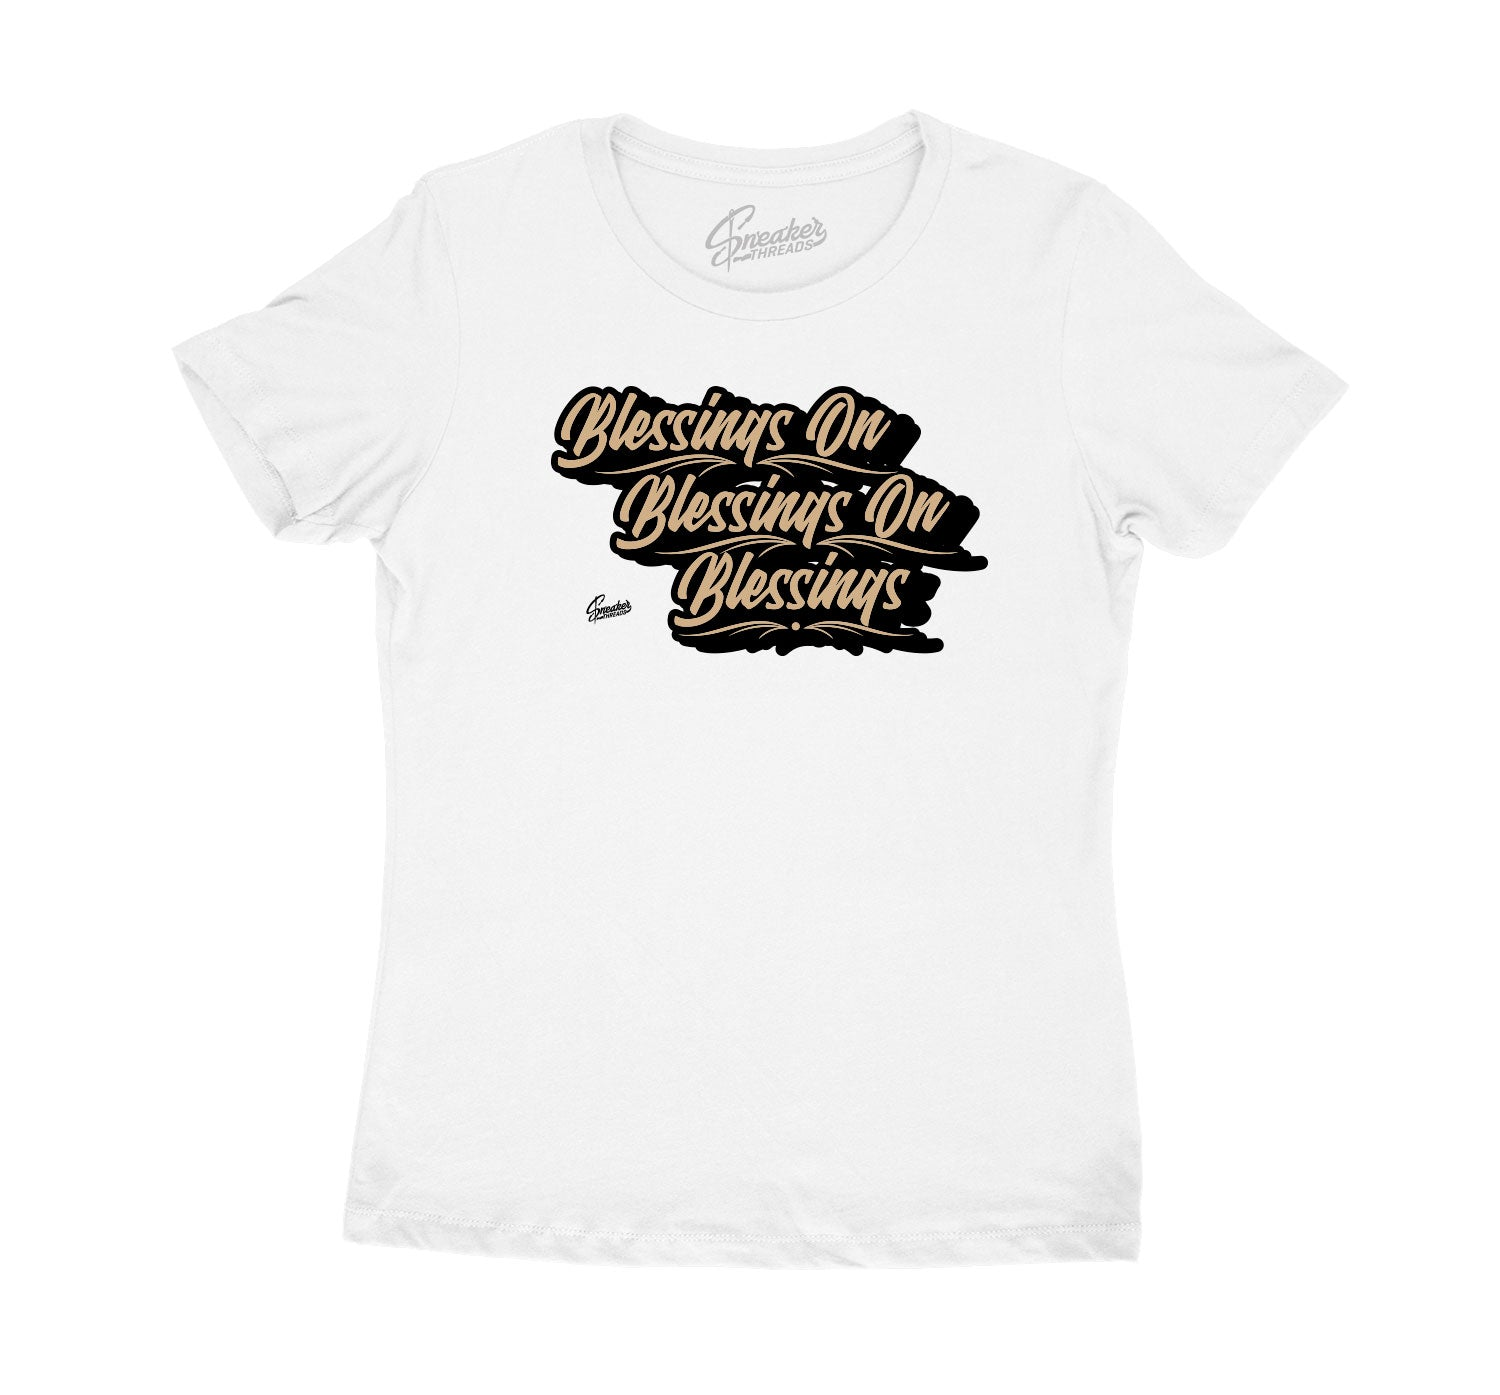 Jordan 4 fossil mushroom sneaker has matching collection of womens shirts